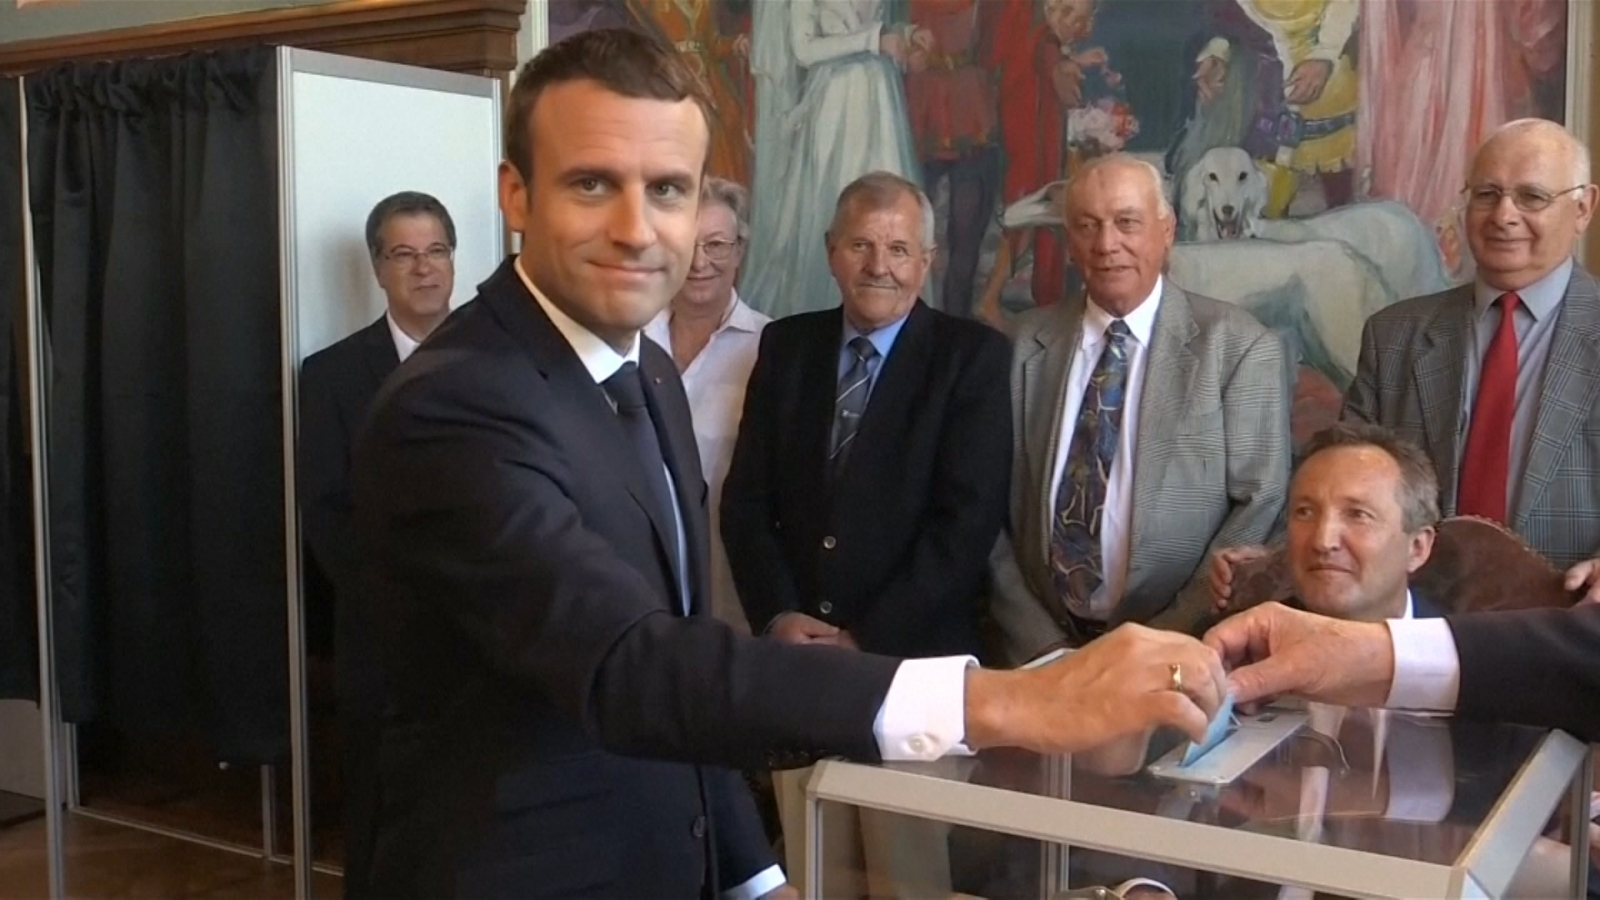 emmanuel-macrons-party-wins-large-majority-in-french-parliament